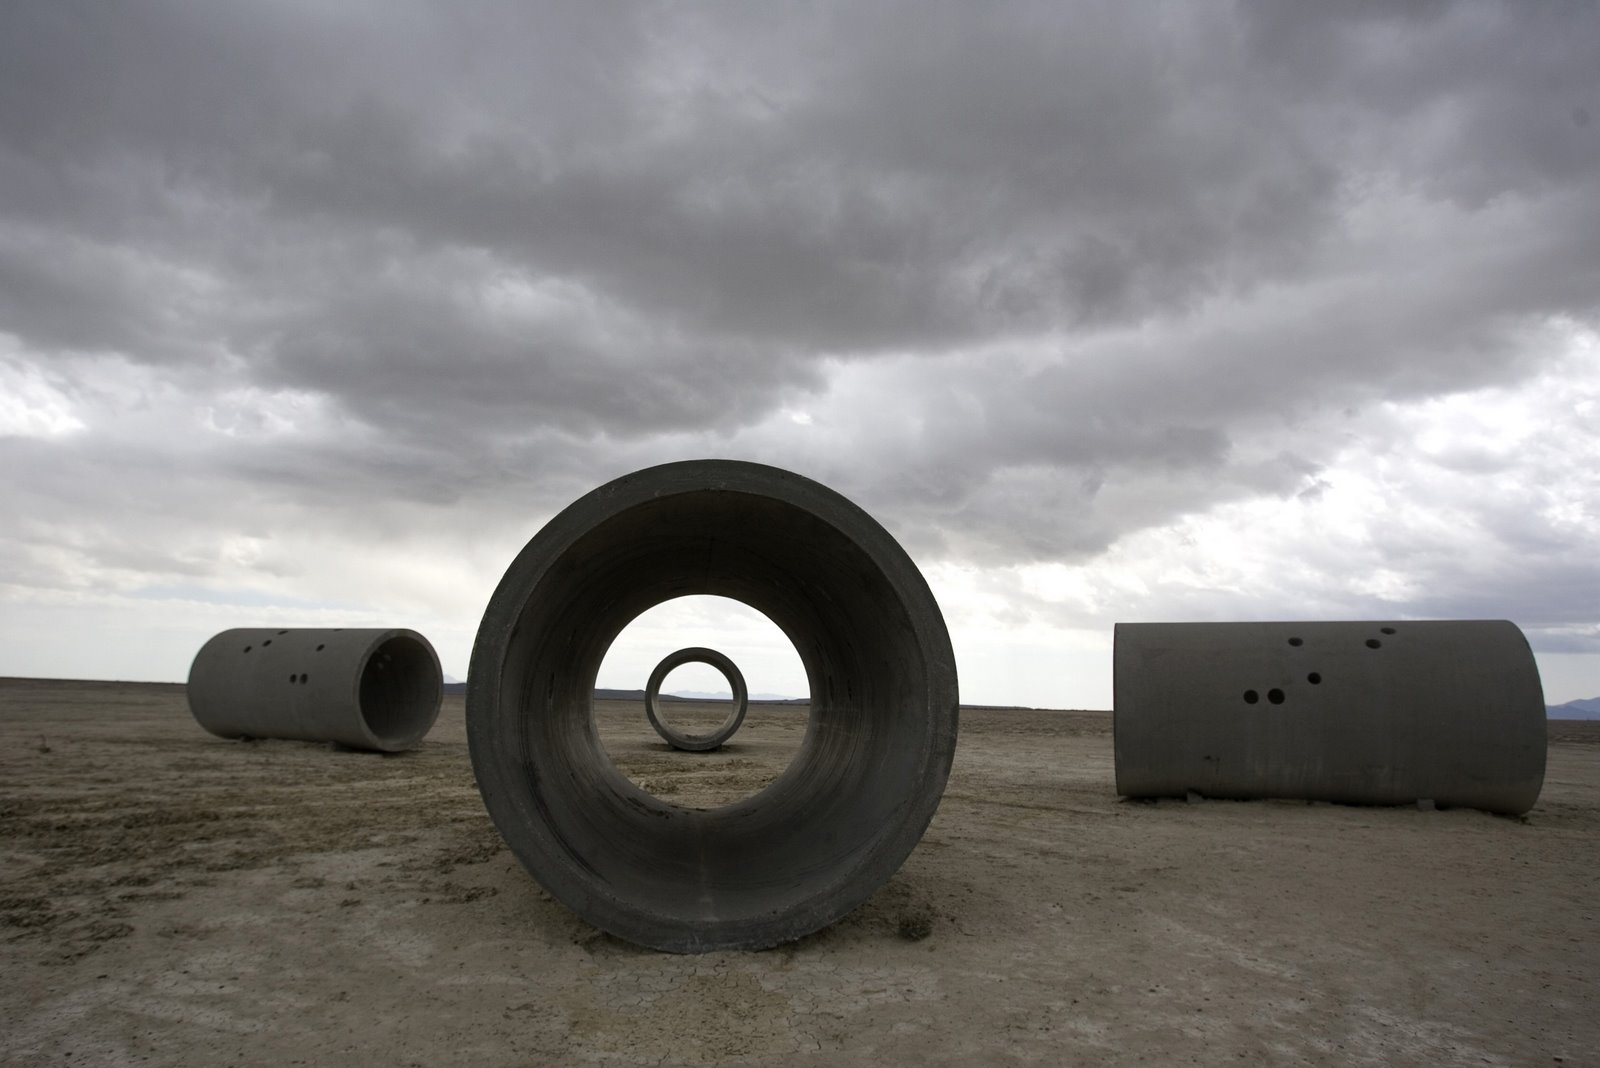 Nancy holt on pinterest sun land art and artists for What is a sun tunnel